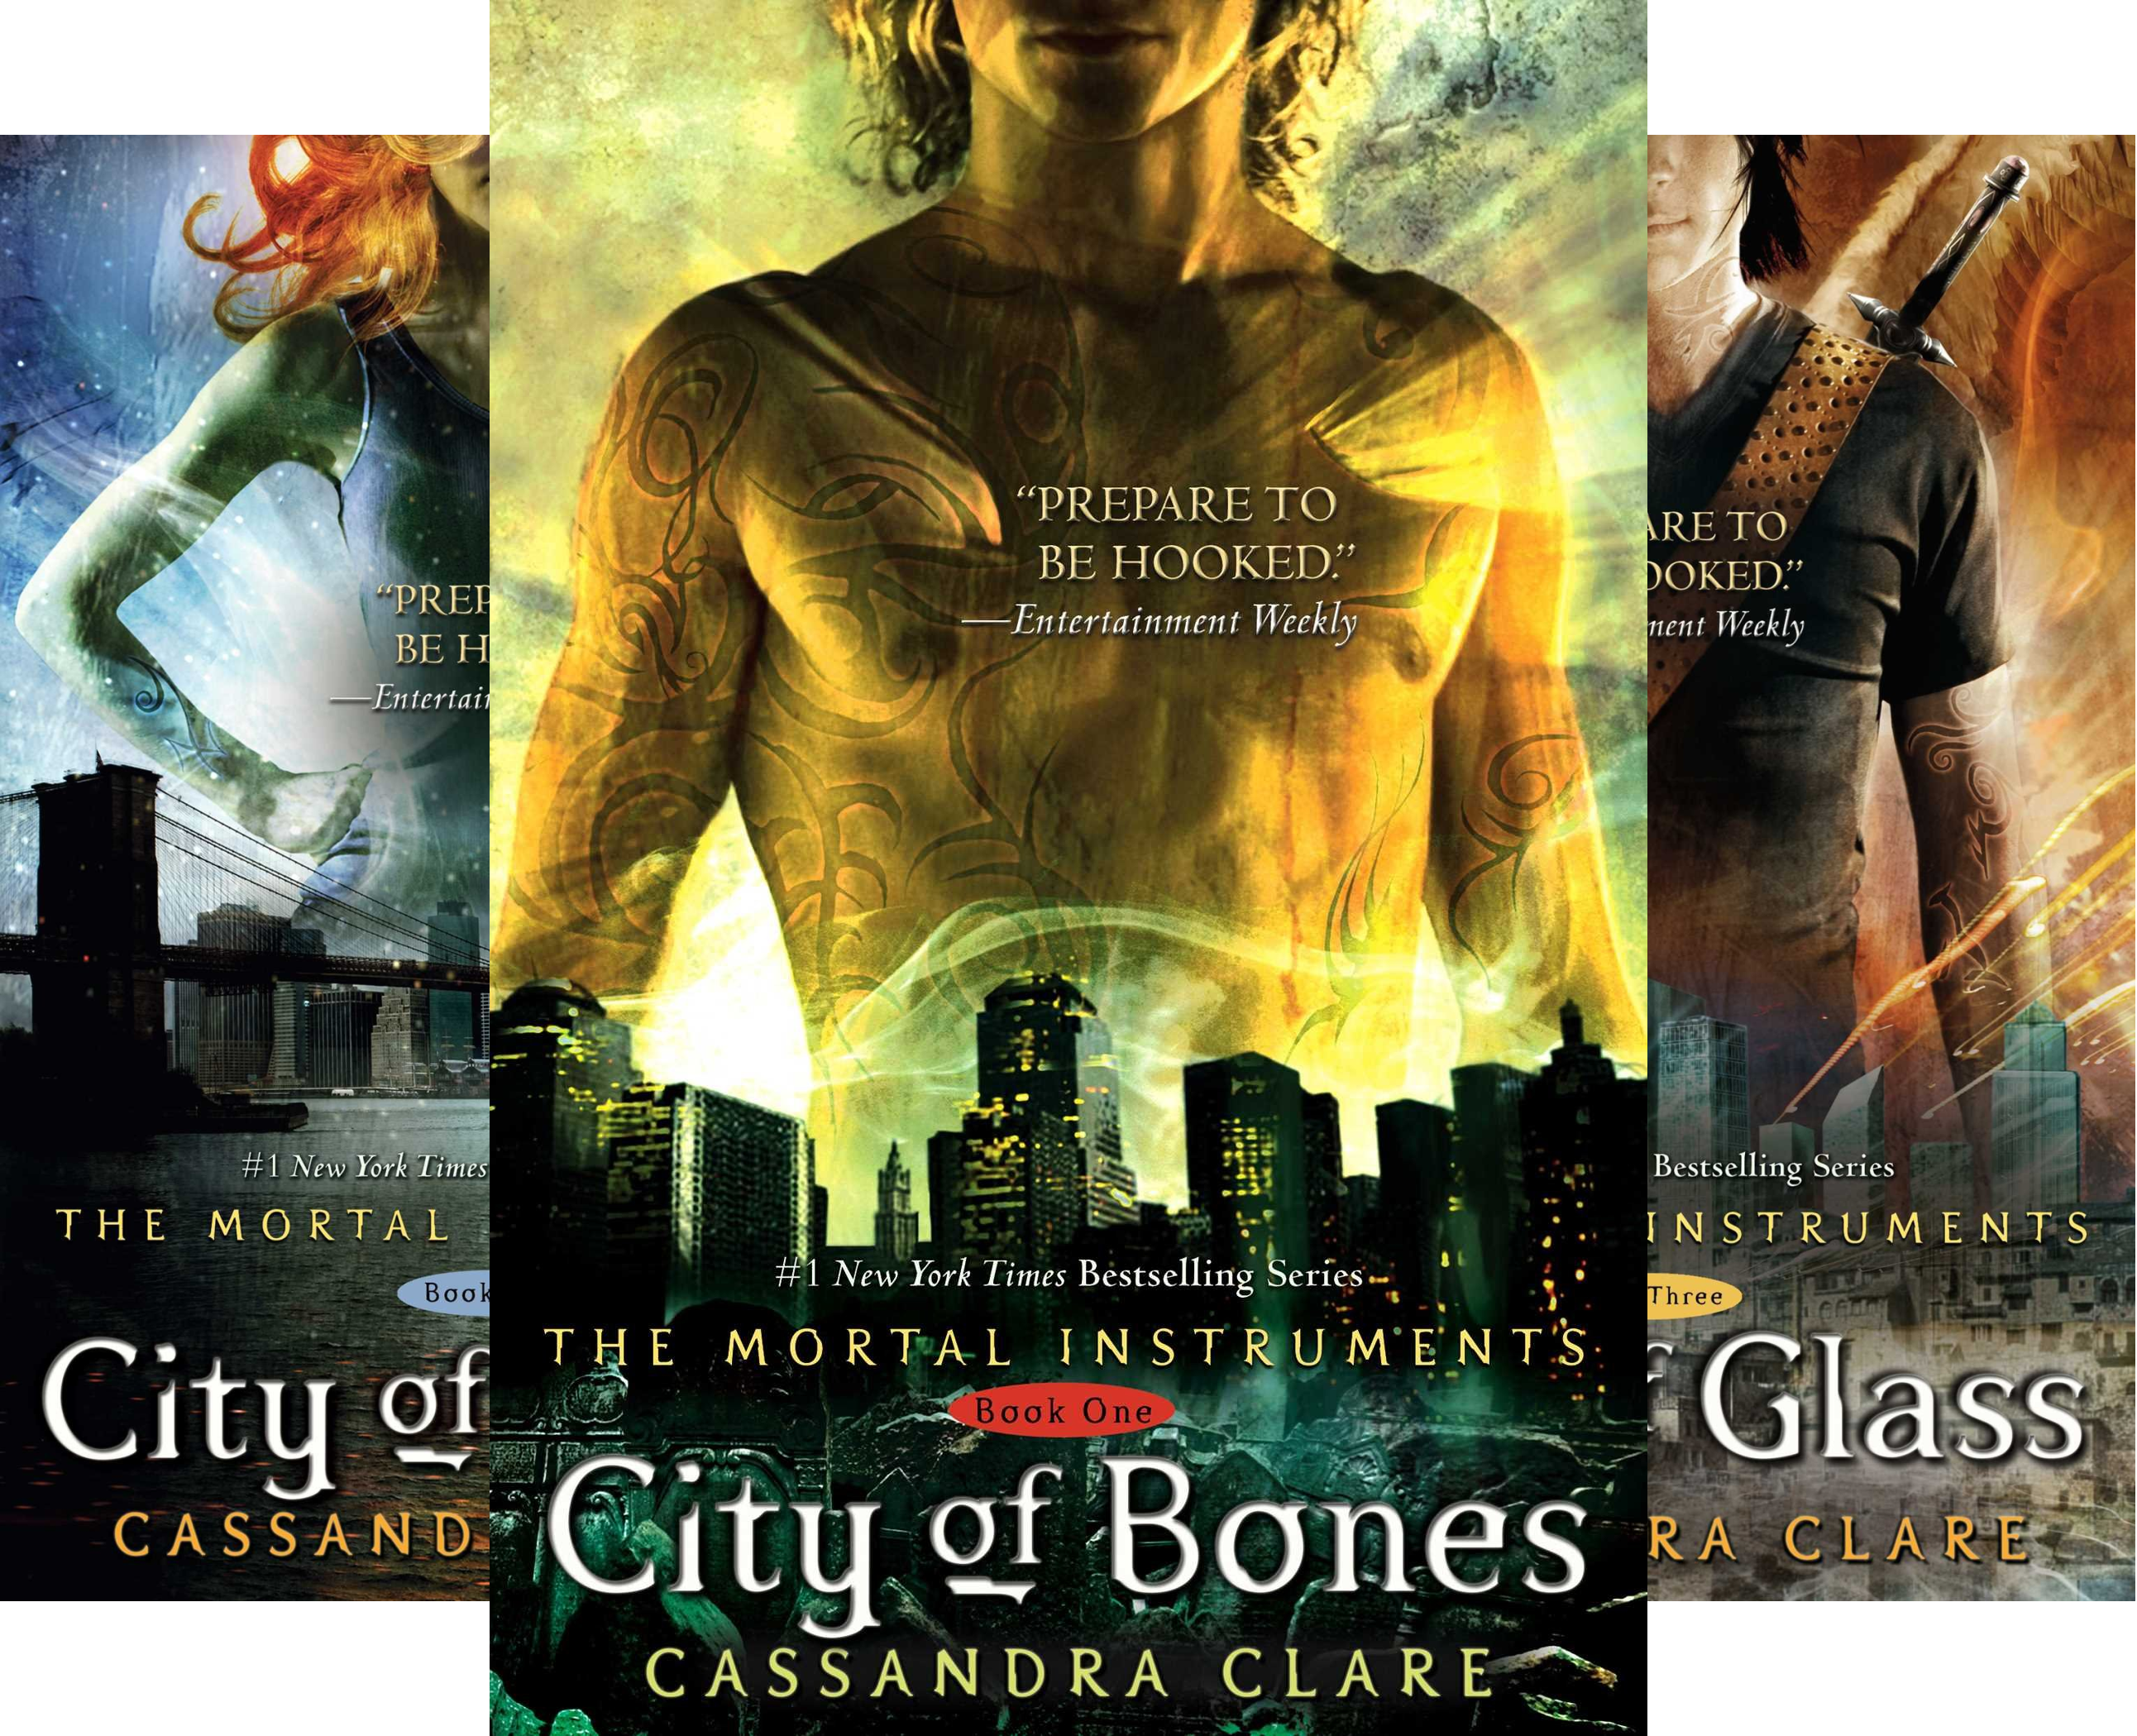 - The Mortal Instruments (6 Books)